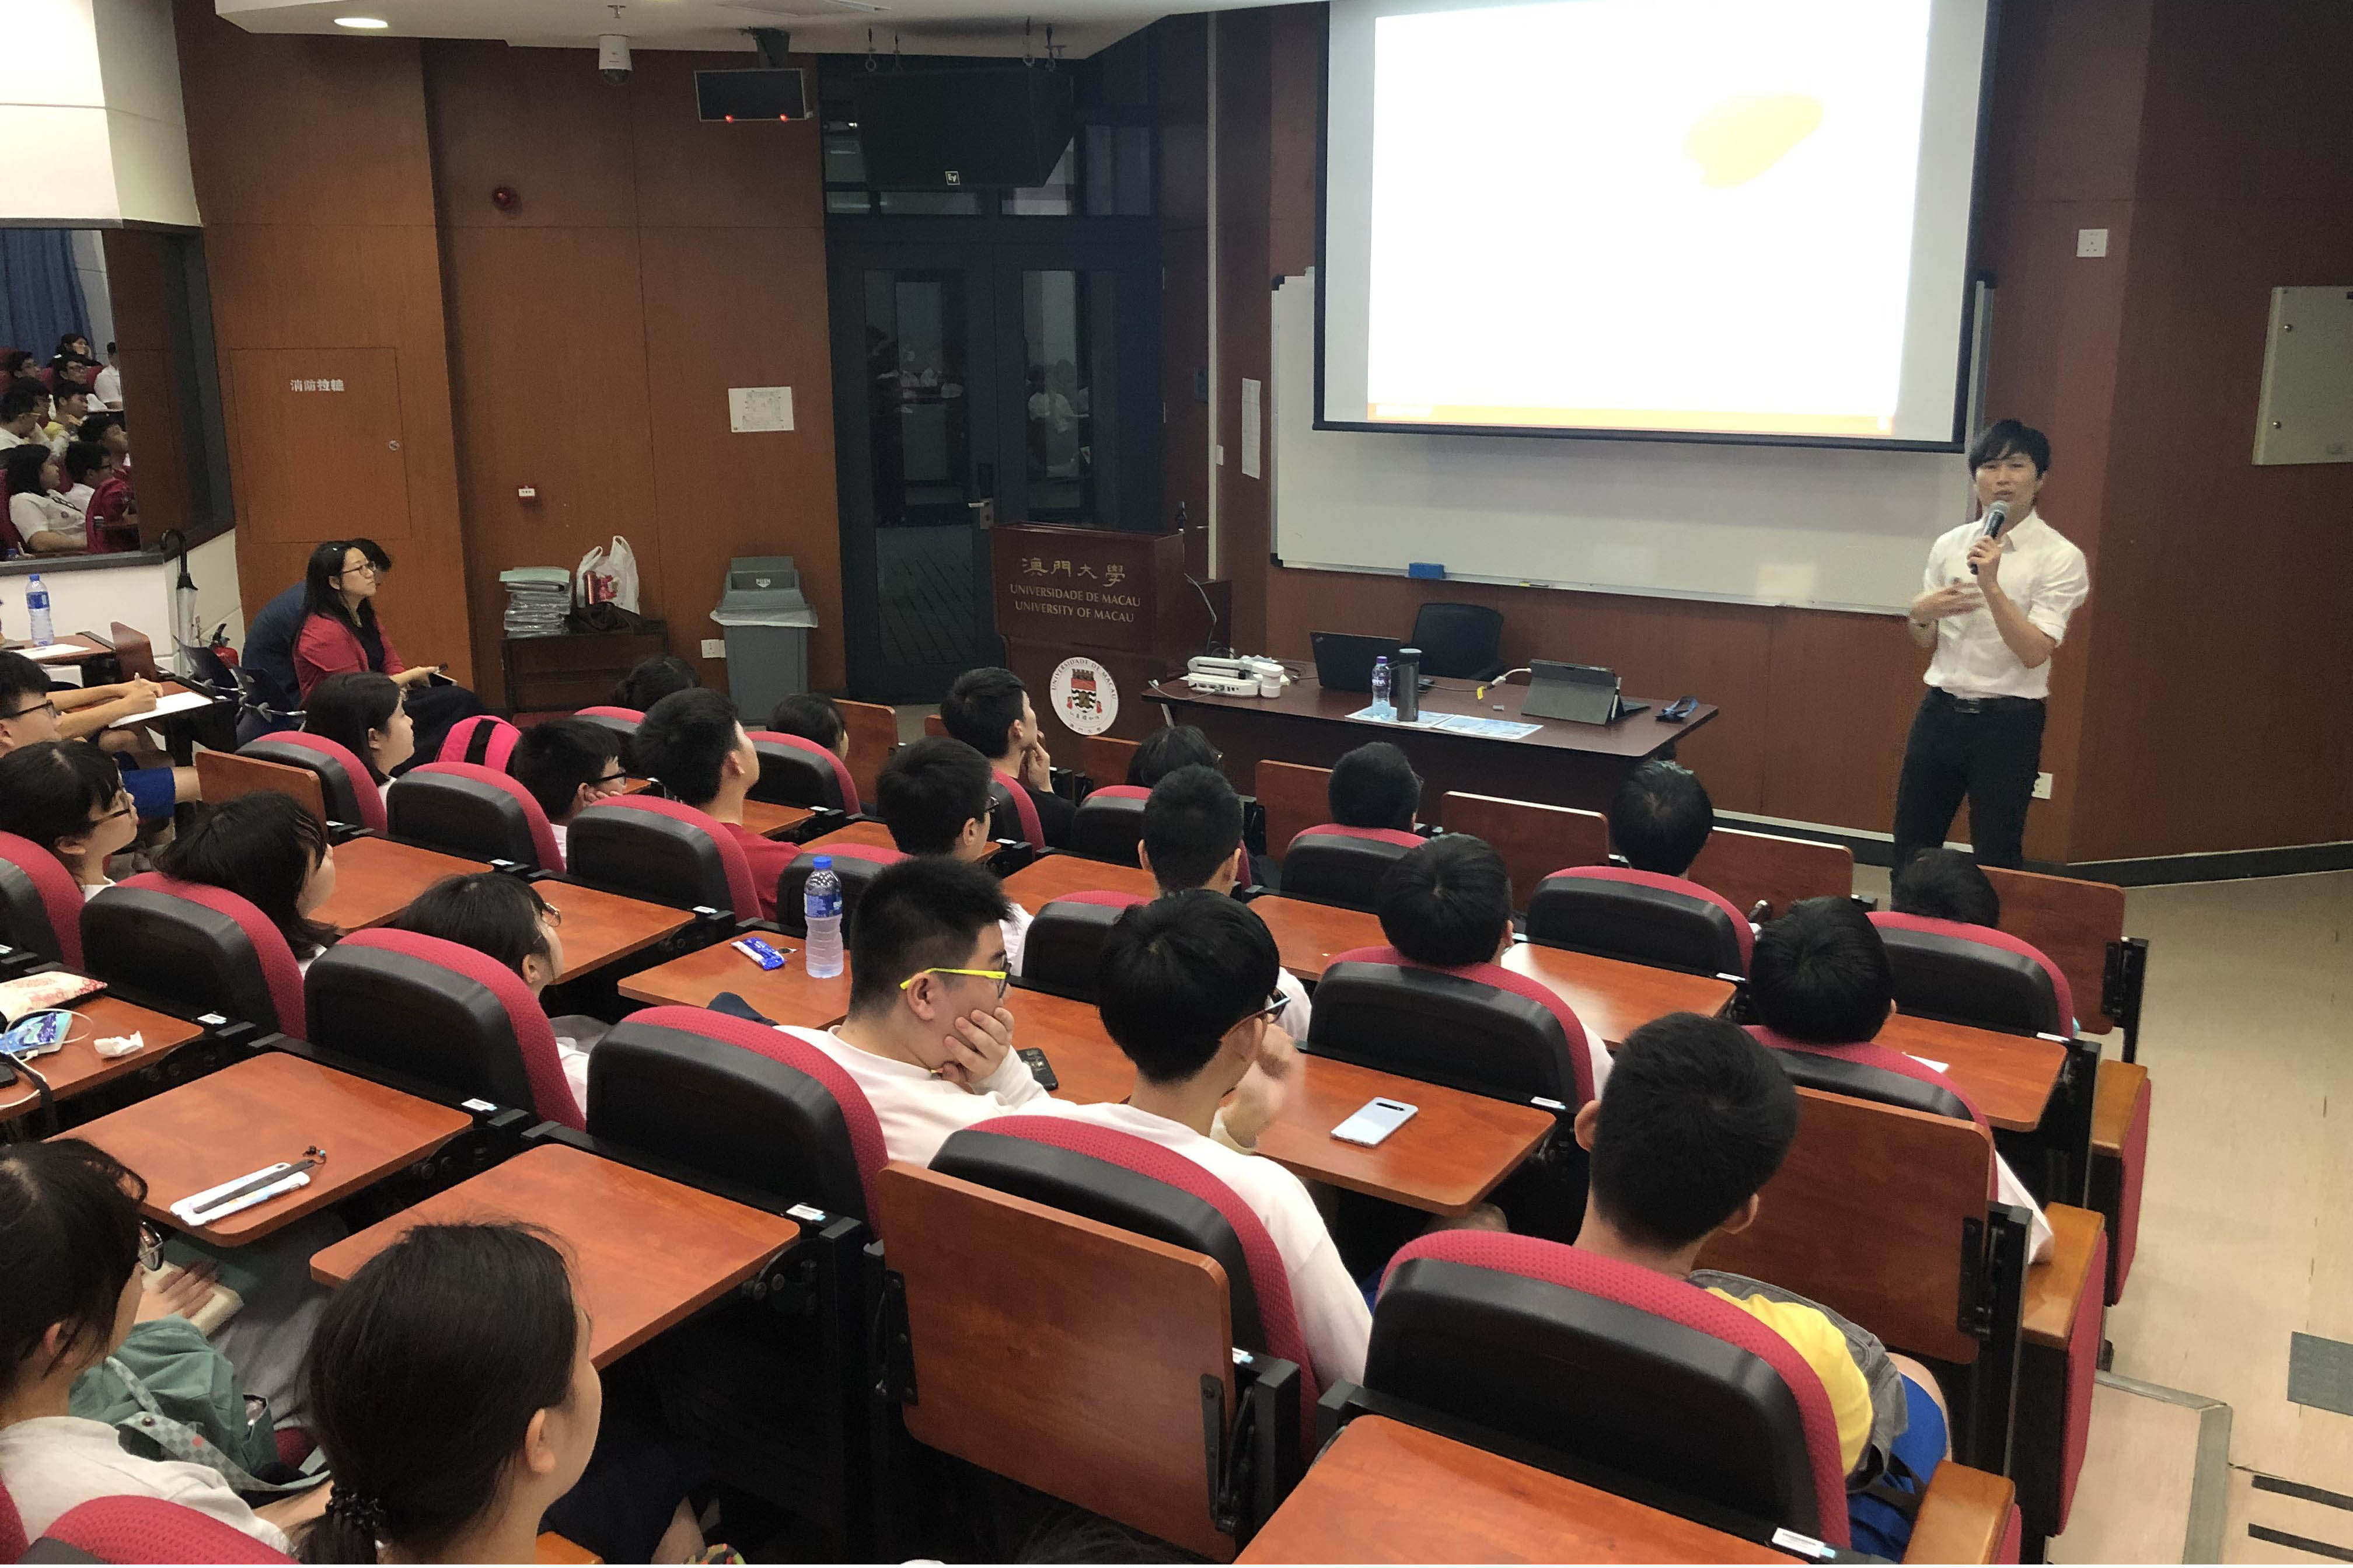 The workshop attracts many secondary school students from Macao